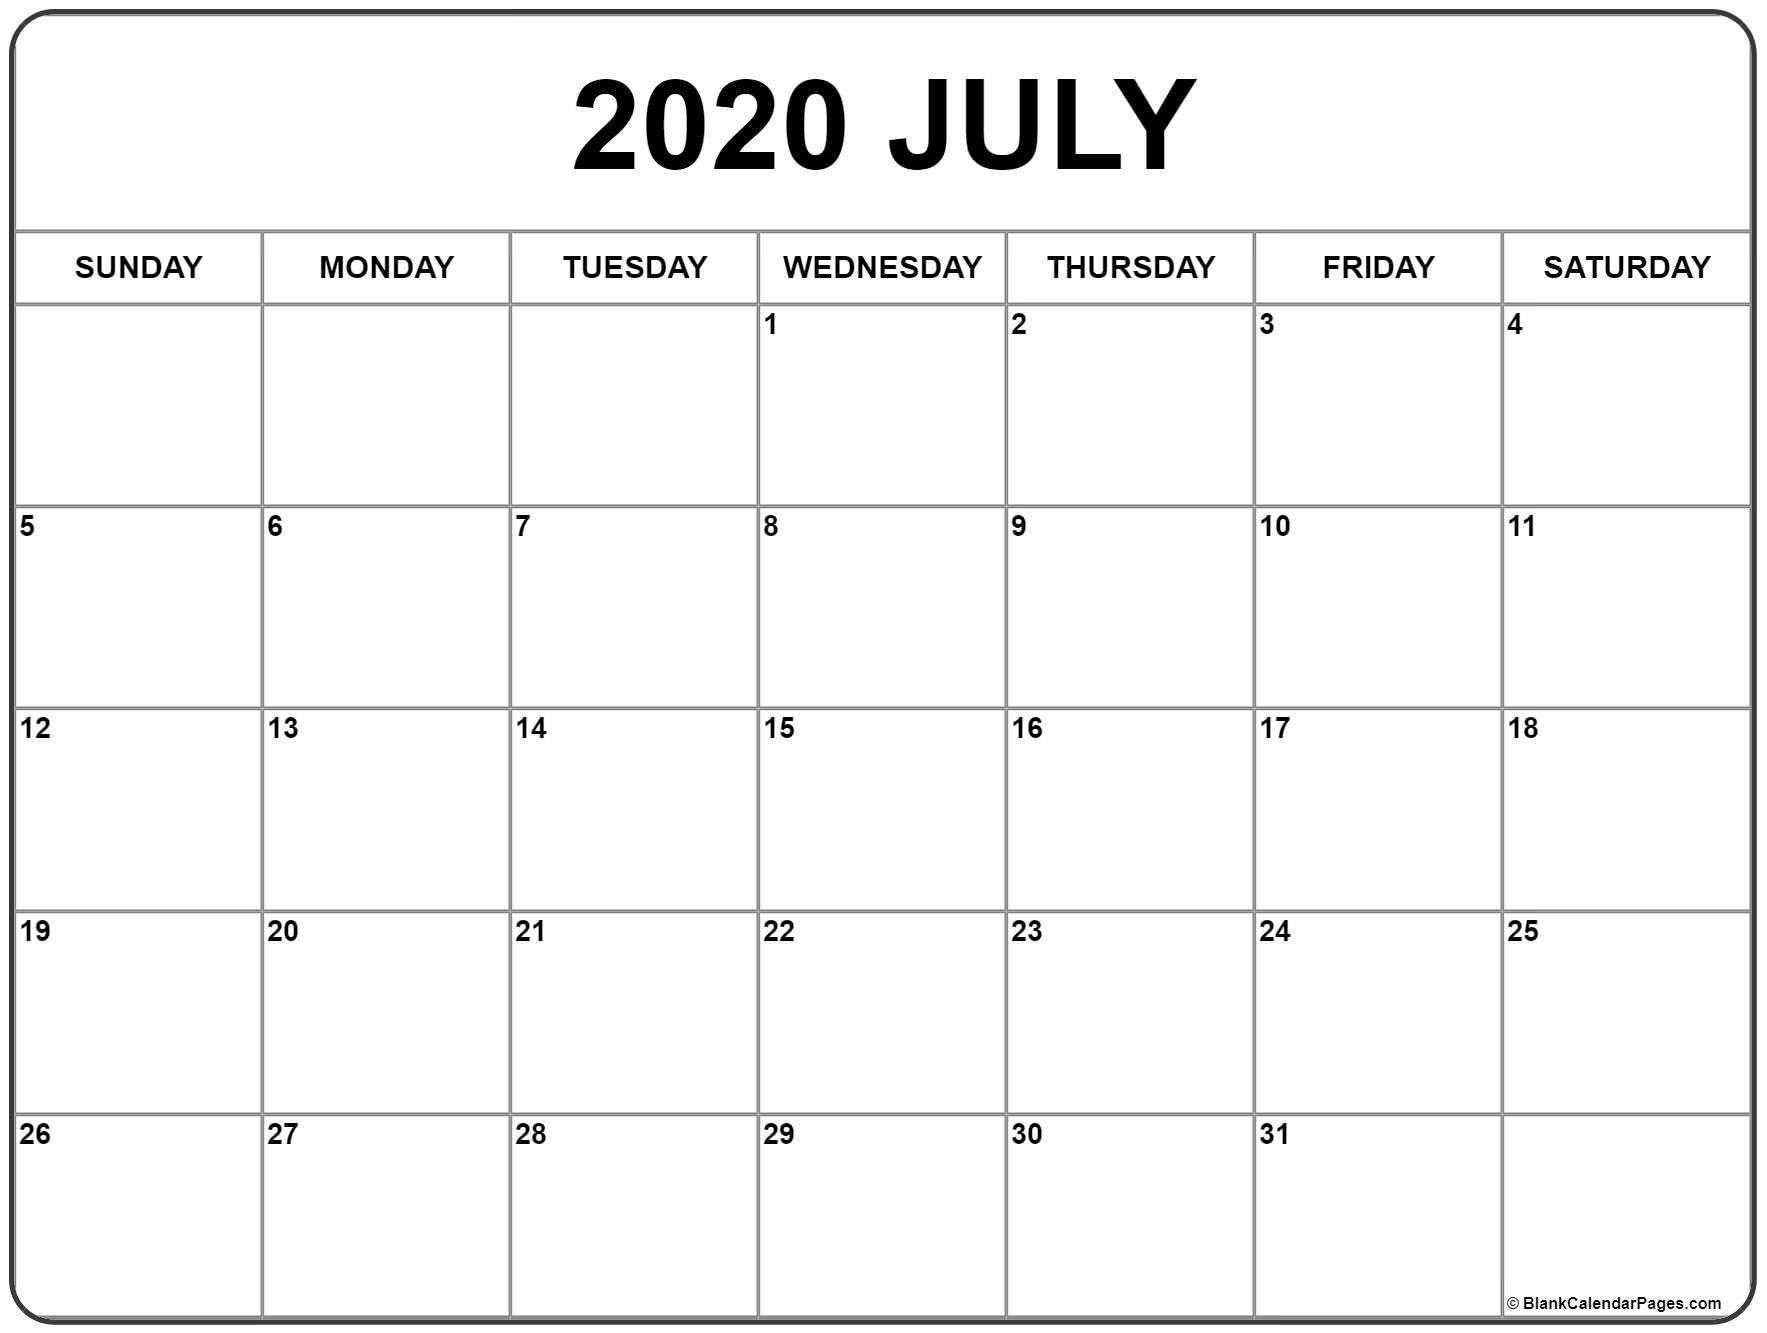 July 2020 Calendar | Free Printable Monthly Calendars-Fillablecalendar Template July 2020